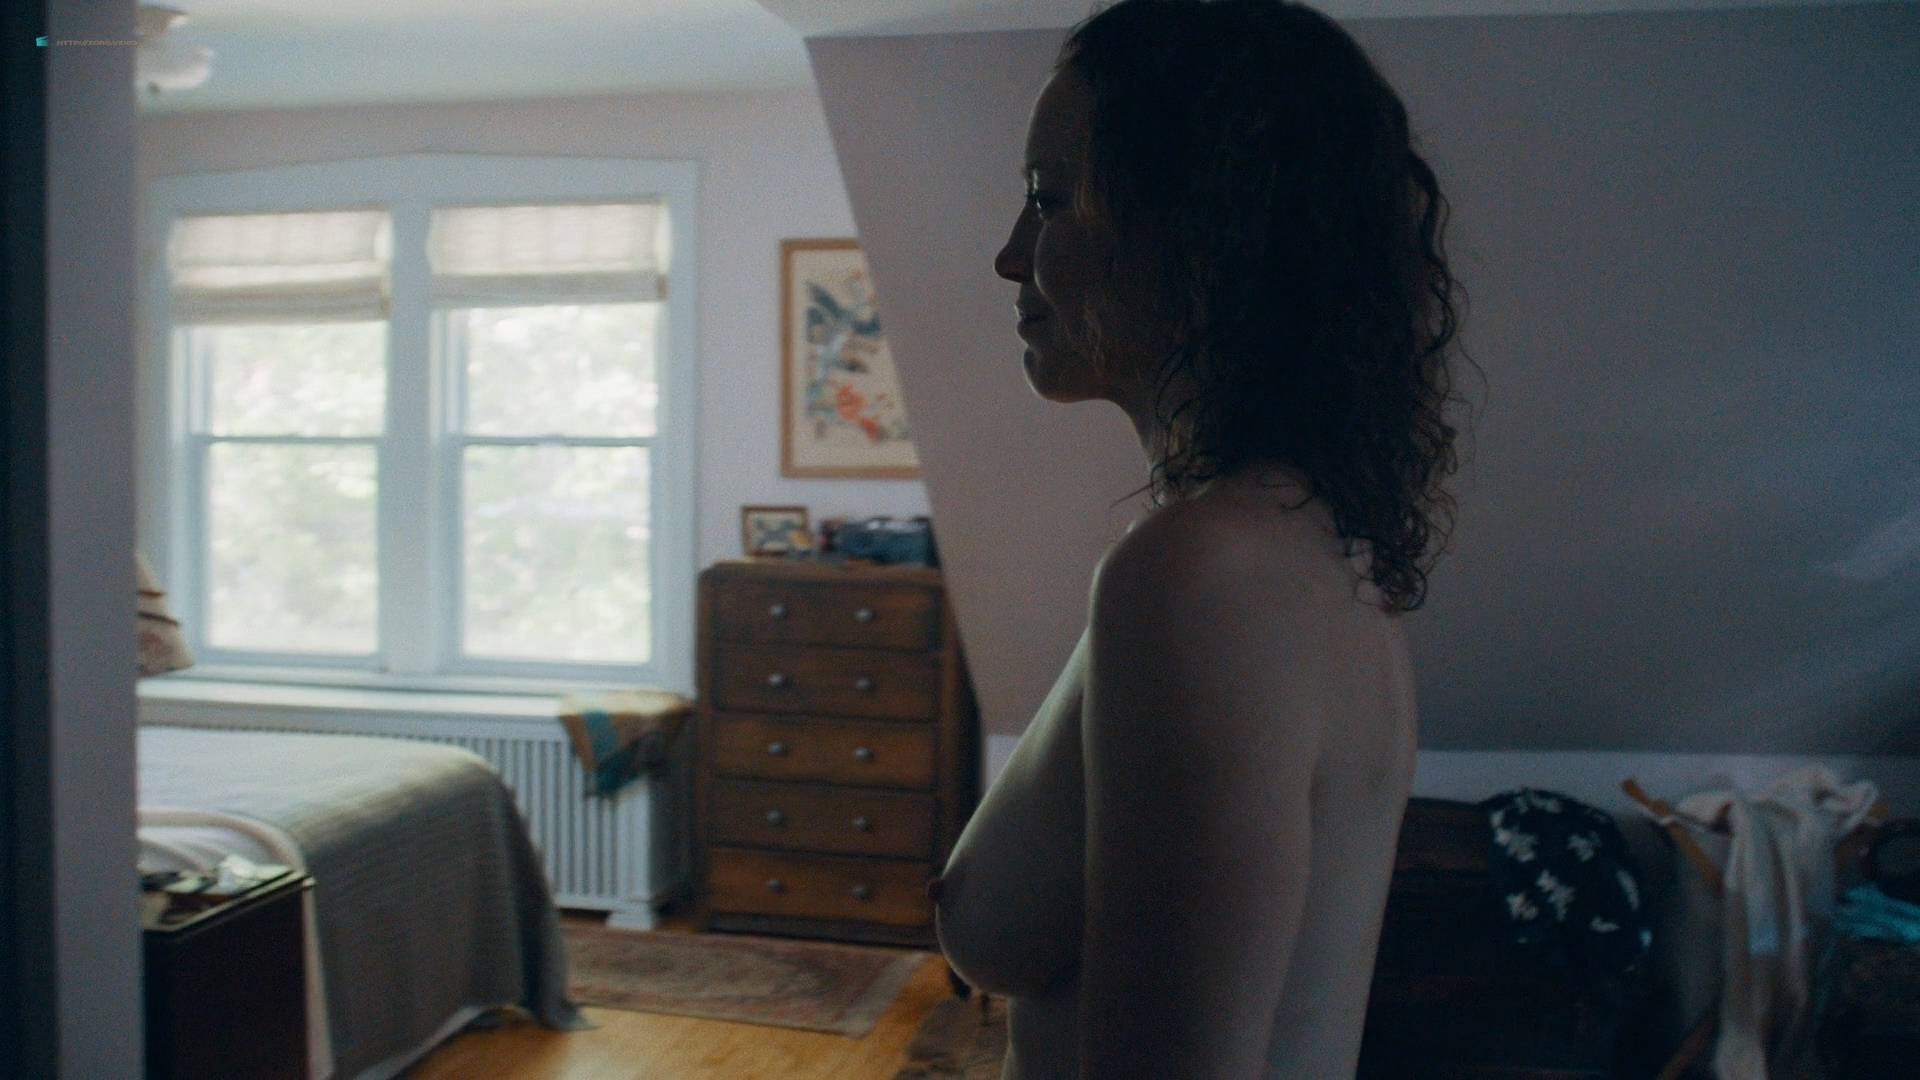 Vid white butt nude want